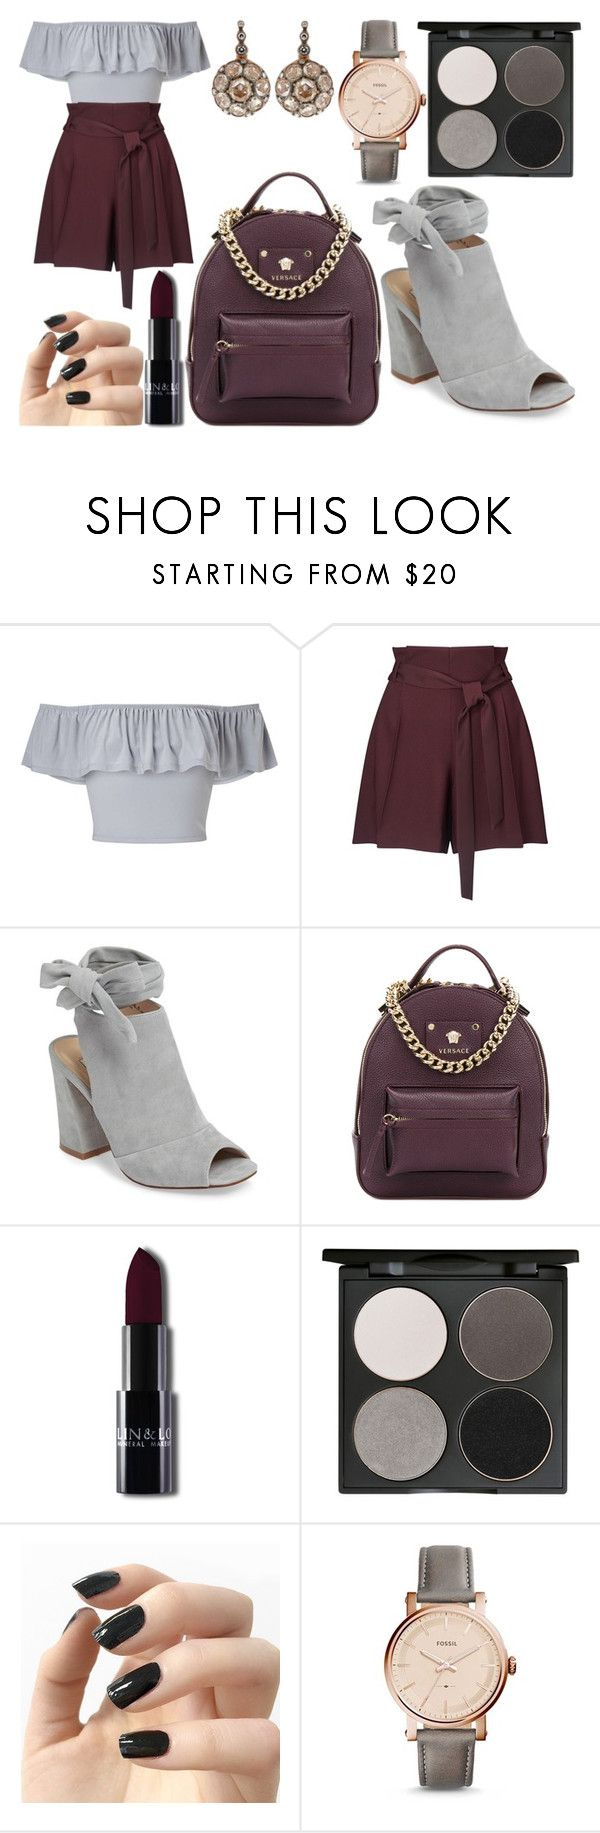 """""""sample size"""" by citrusapple-1 ❤ liked on Polyvore featuring Miss Selfridge, Kristin Cavallari, Versace, Gorgeous Cosmetics, Incoco, FOSSIL and Selim Mouzannar"""